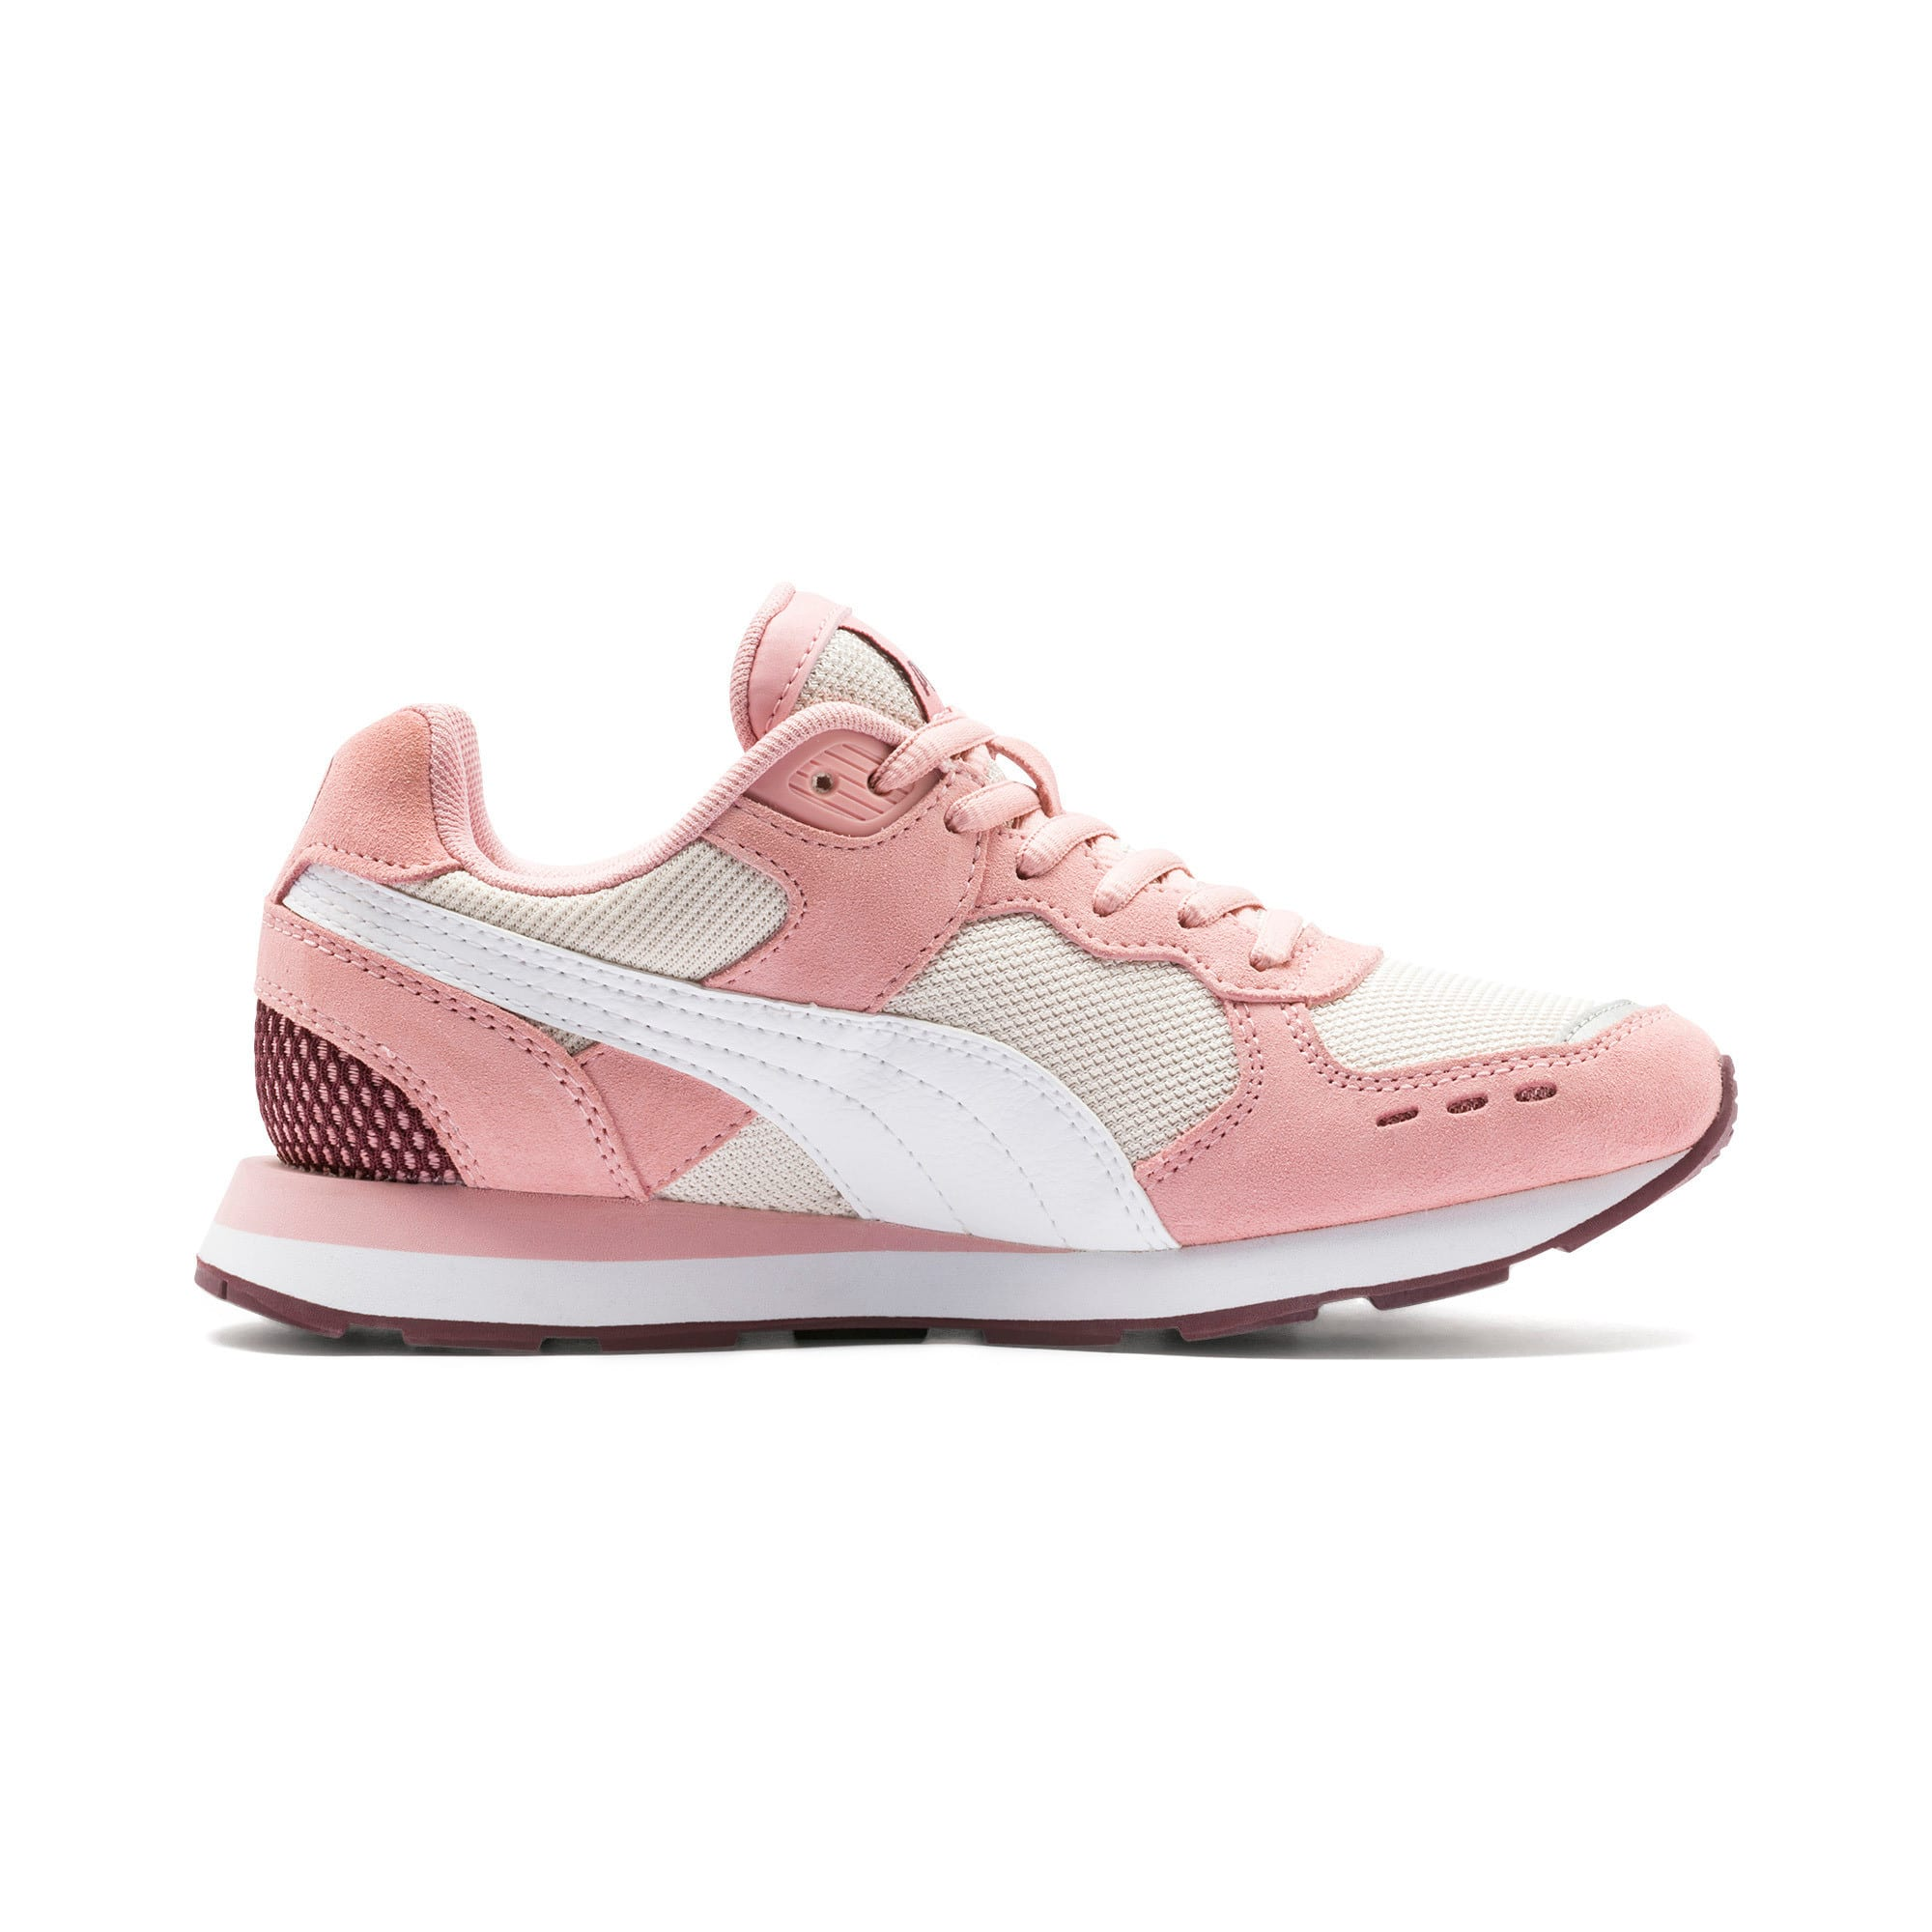 Thumbnail 5 of Vista Youth Trainers, Bridal Rose-Puma White, medium